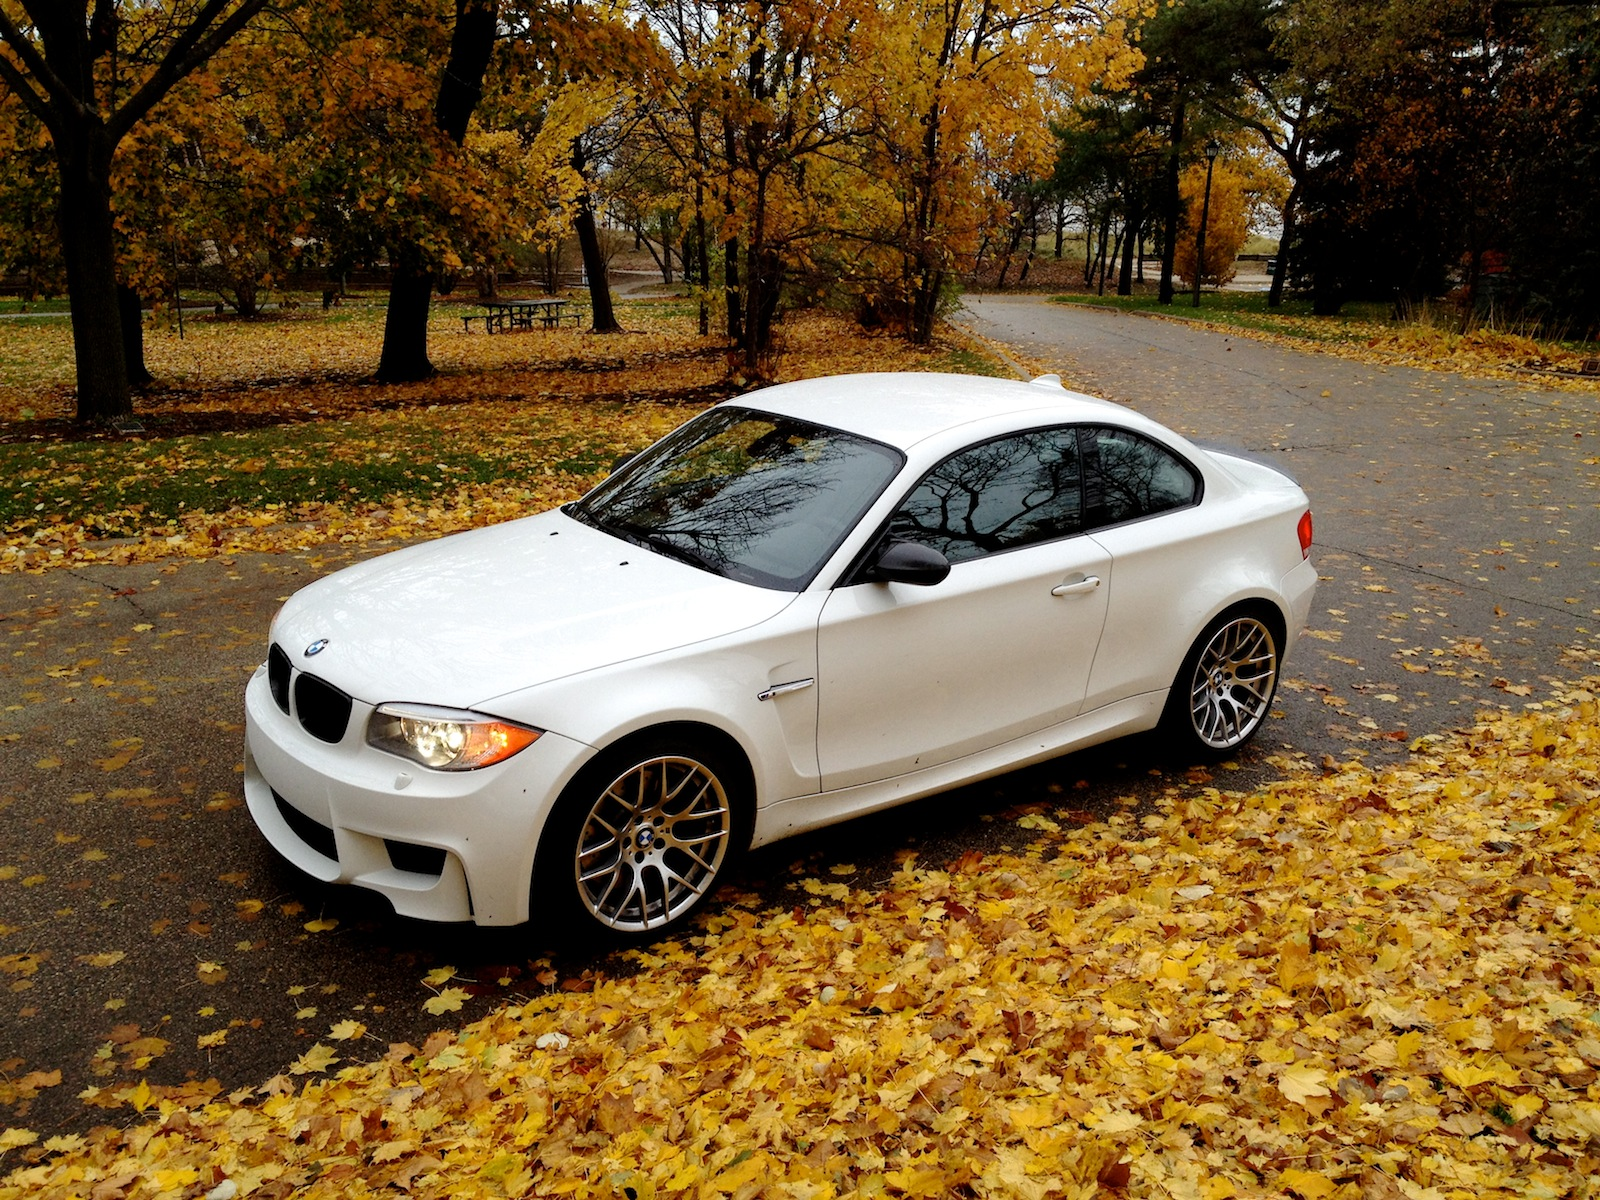 Bf Review 2 000 Miles In A Bmw 1m Bimmerfile